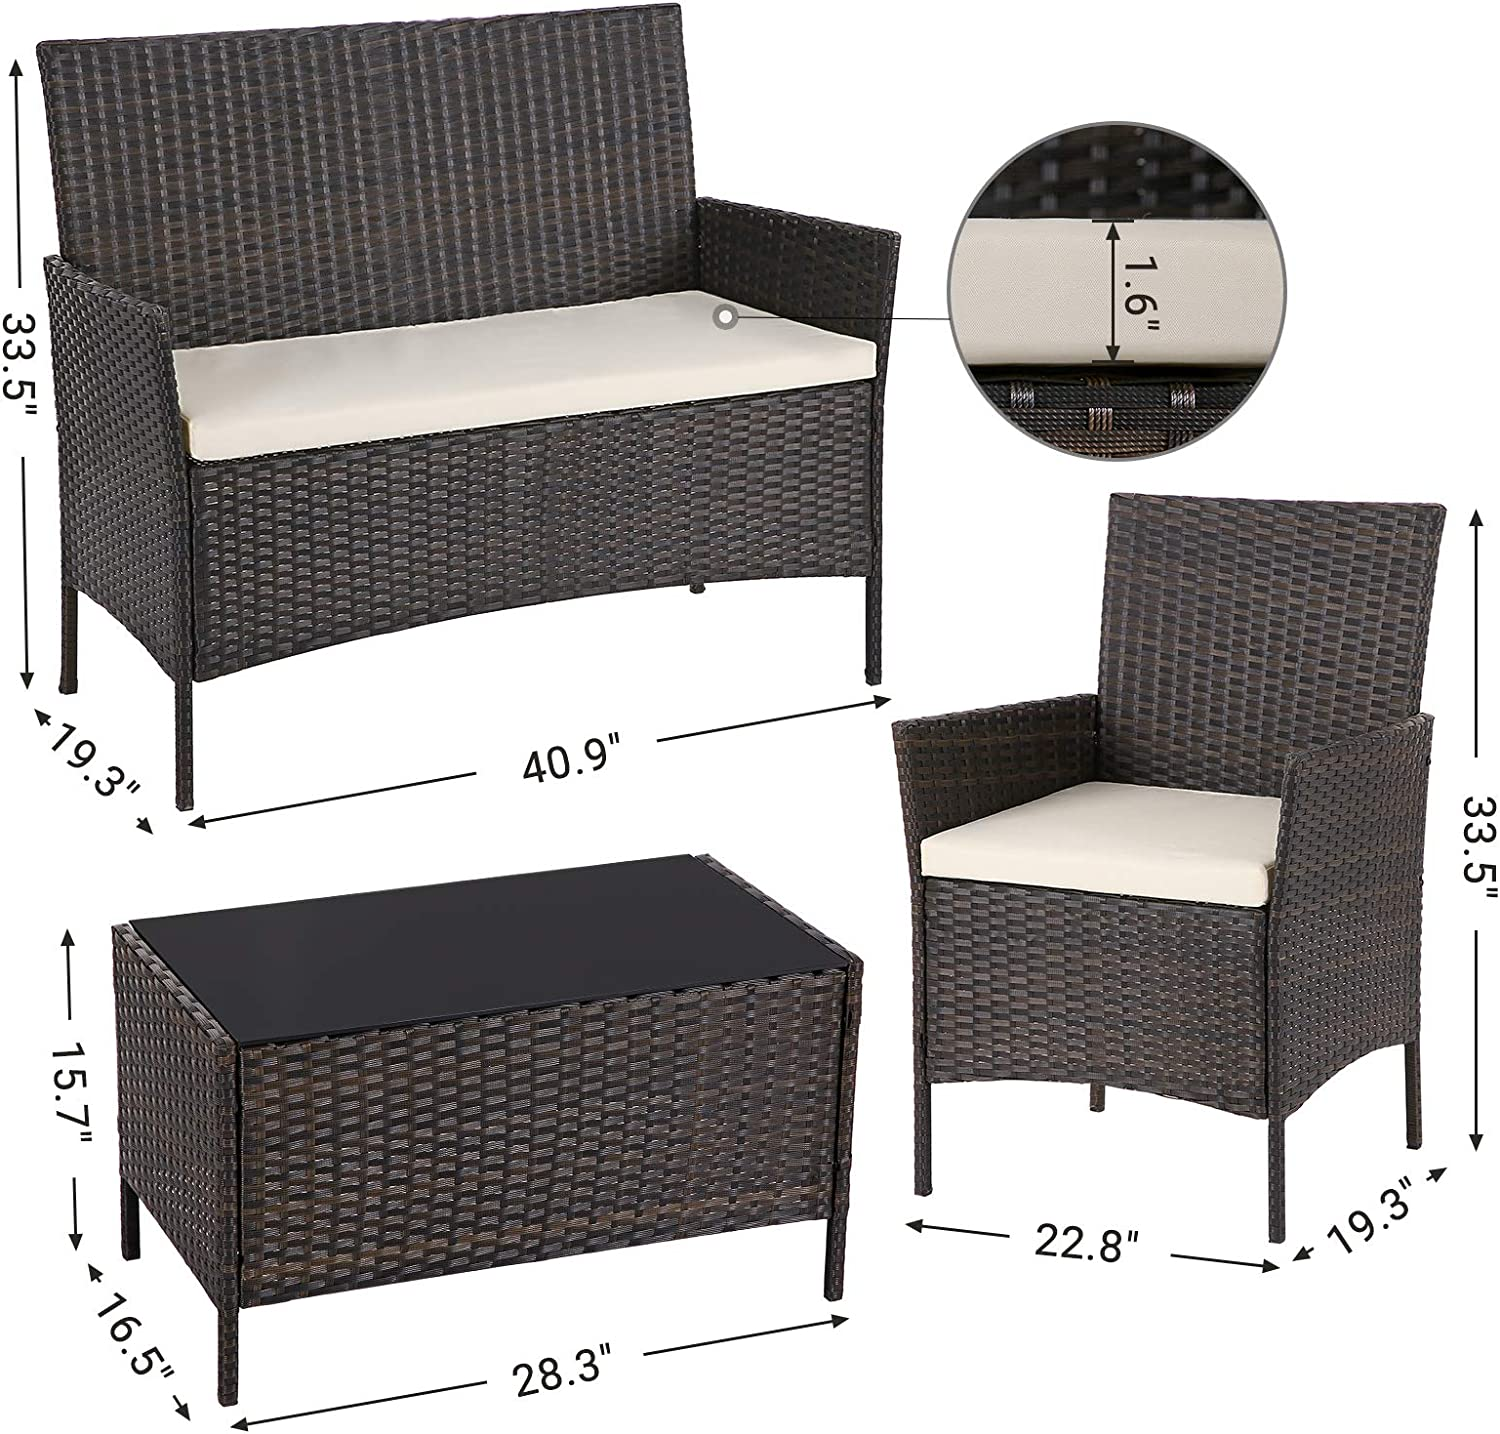 1 Sofa 3 Removable Covers Patio Furniture Set with 2 Chairs 1 Coffee Table with Tempered Glass Top SONGMICS Set of 4 Polyrattan Garden Furniture Brown and Beige UGGF002BR1